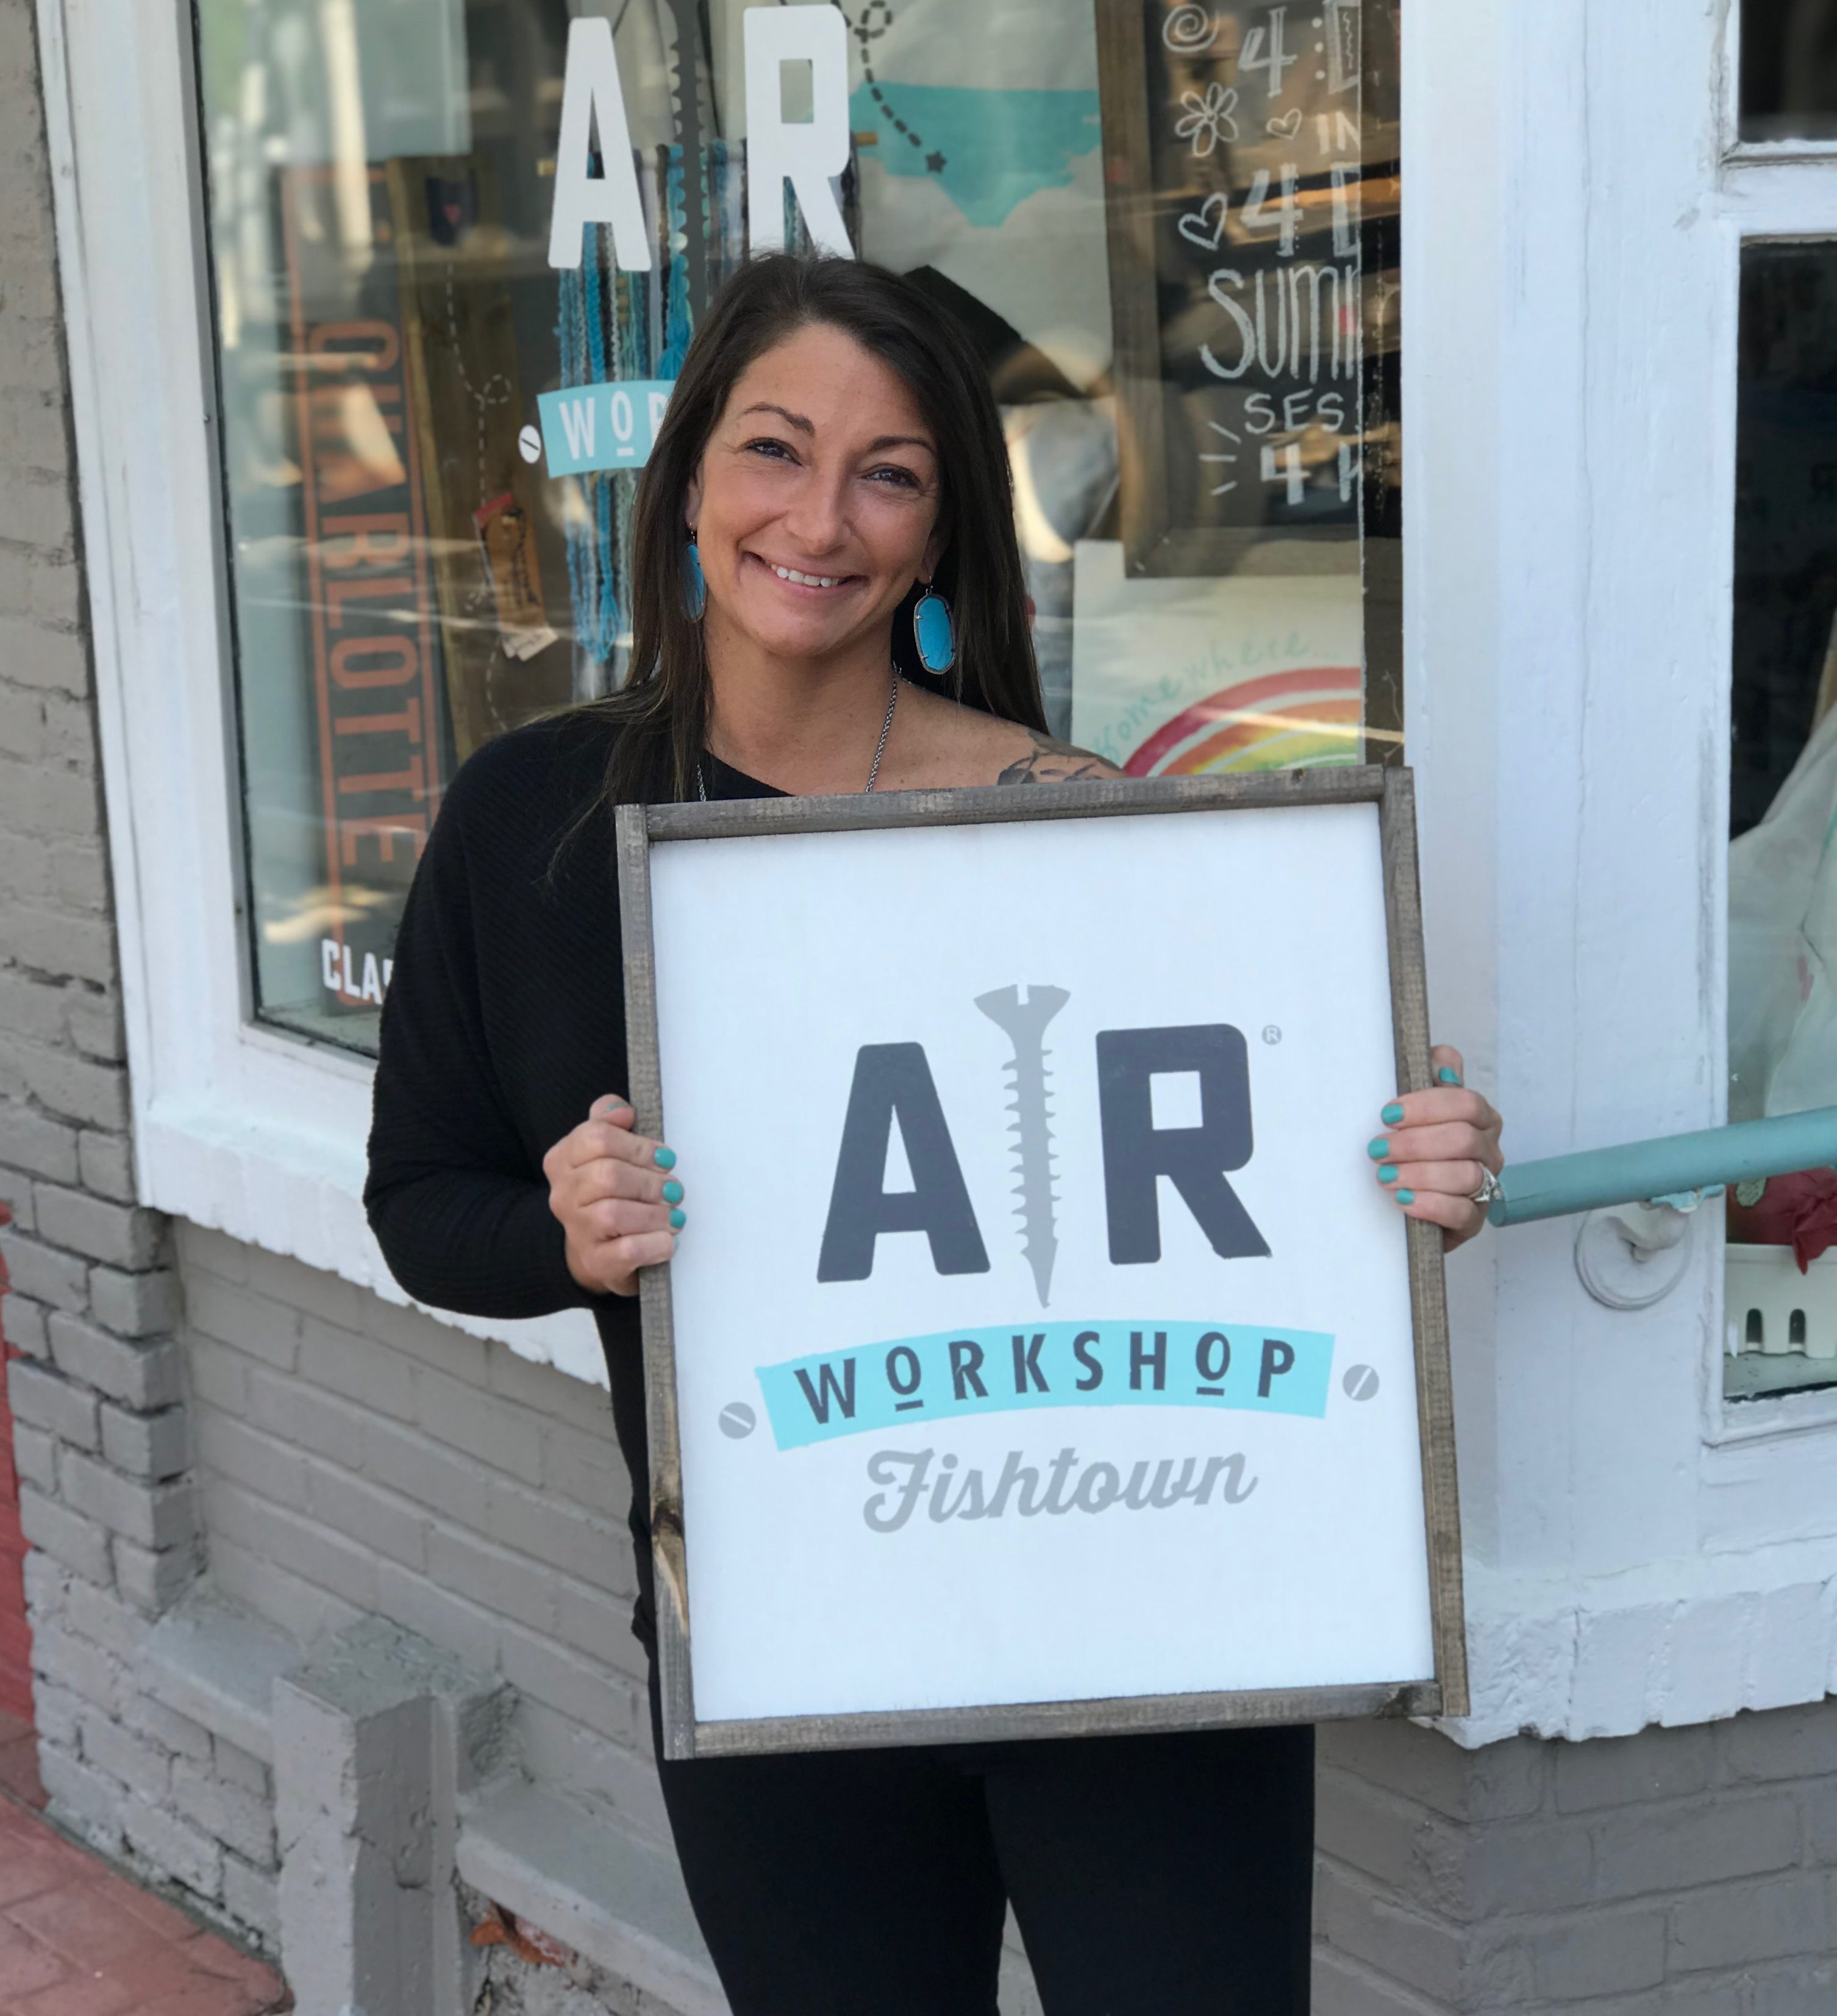 ar workshop fishtown pa danielle